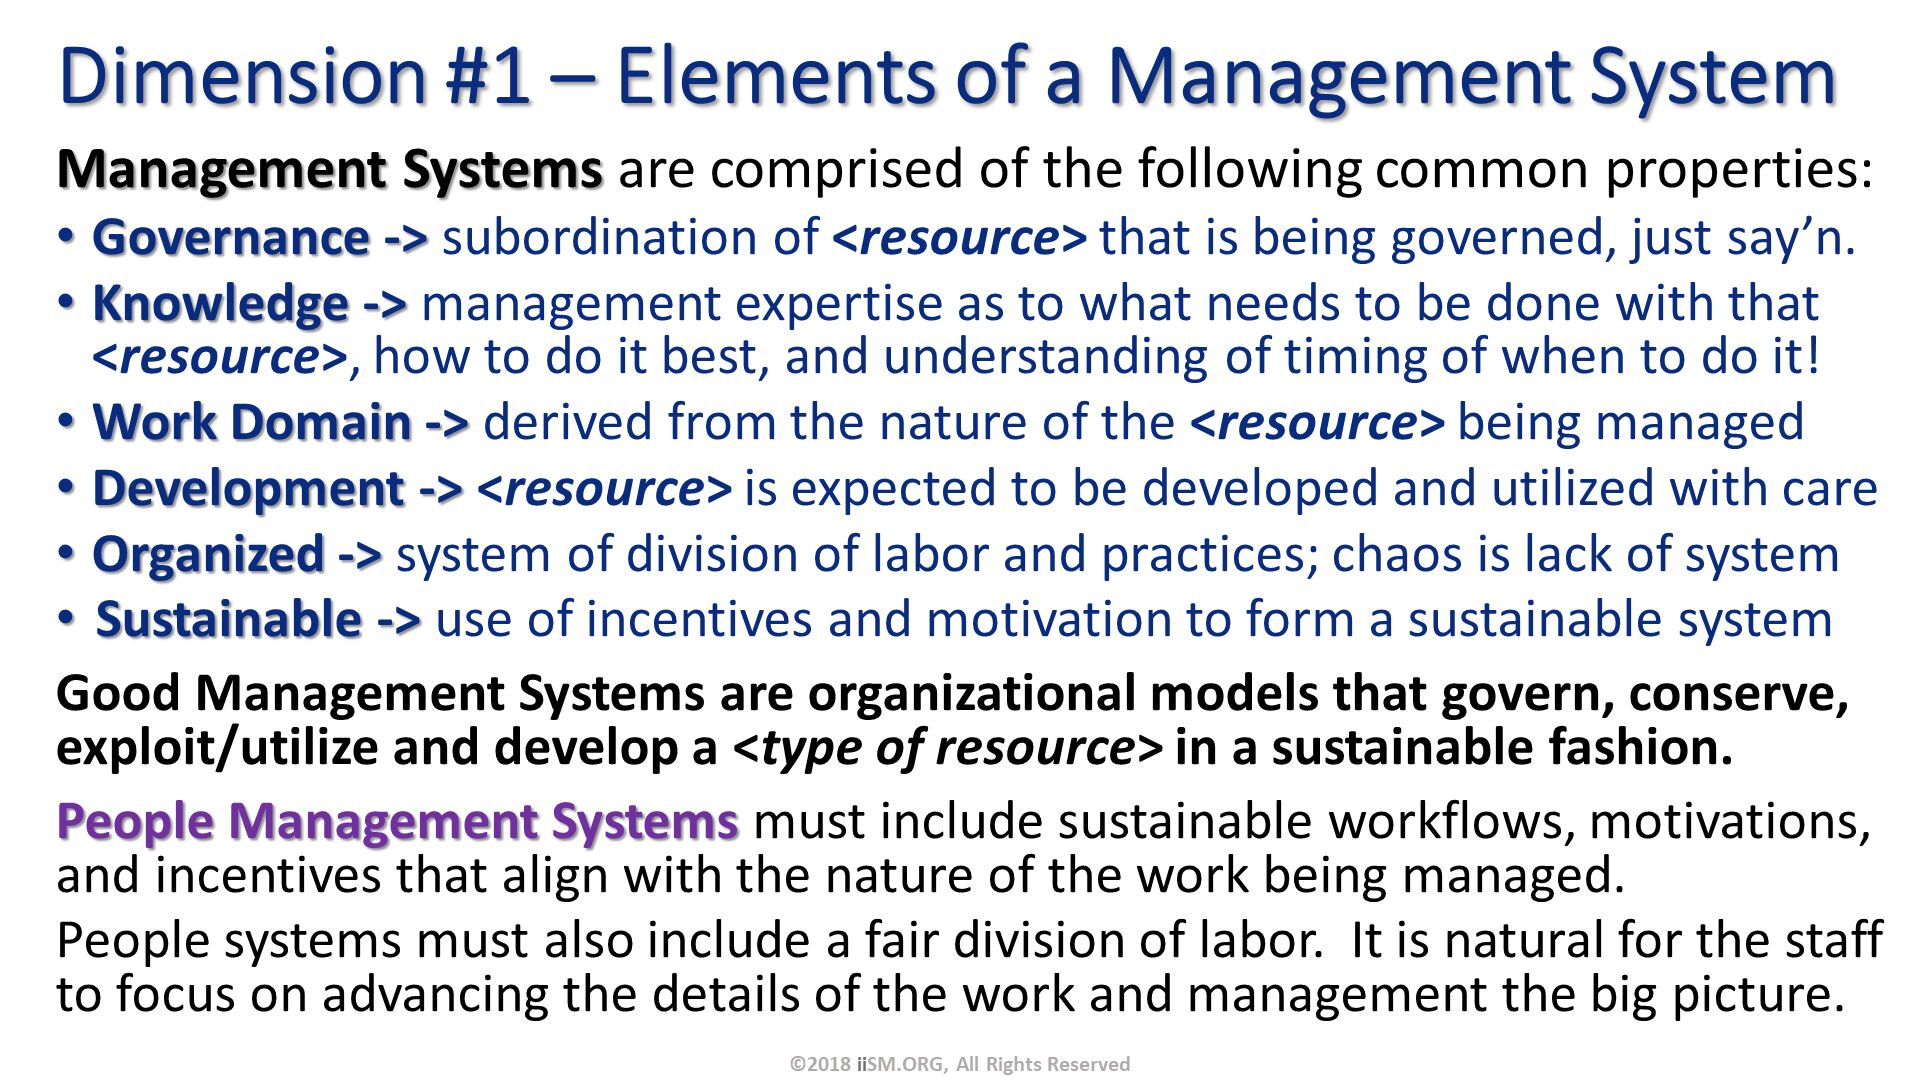 Management Systems are comprised of the following common properties: Governance -> subordination of <resource> that is being governed, just say'n. Knowledge -> management expertise as to what needs to be done with that <resource>, how to do it best, and understanding of timing of when to do it! Work Domain -> derived from the nature of the <resource> being managed Development -> <resource> is expected to be developed and utilized with care Organized -> system of division of labor and practices; chaos is lack of system Sustainable -> use of incentives and motivation to form a sustainable system Good Management Systems are organizational models that govern, conserve, exploit/utilize and develop a <type of resource> in a sustainable fashion. People Management Systems must include sustainable workflows, motivations, and incentives that align with the nature of the work being managed. People systems must also include a fair division of labor.  It is natural for the staff to focus on advancing the details of the work and management the big picture. . Dimension #1 – Elements of a Management System. ©2018 iiSM.ORG, All Rights Reserved.